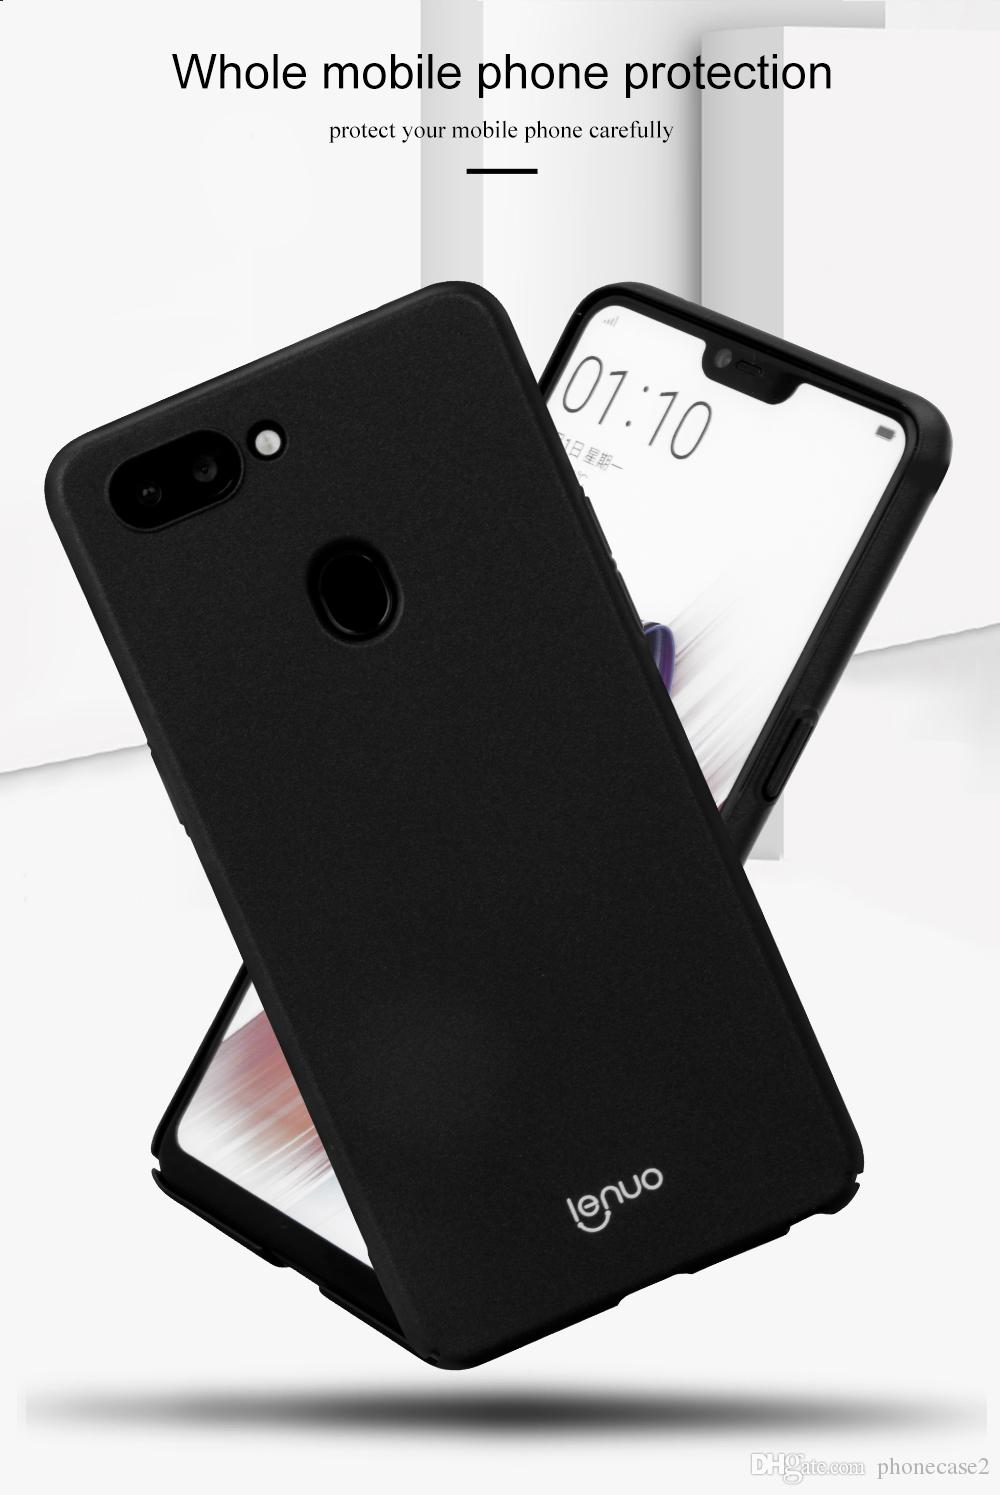 brand new 93e3e 32fd9 OPPO R15 Dream Mirror Edition Case OPPO R15 Cover Lenuo Le Shield Luxury  Hard PC Back Cover Case For OPPO R15 Pro Phone Cases Tough Cell Phone Cases  ...